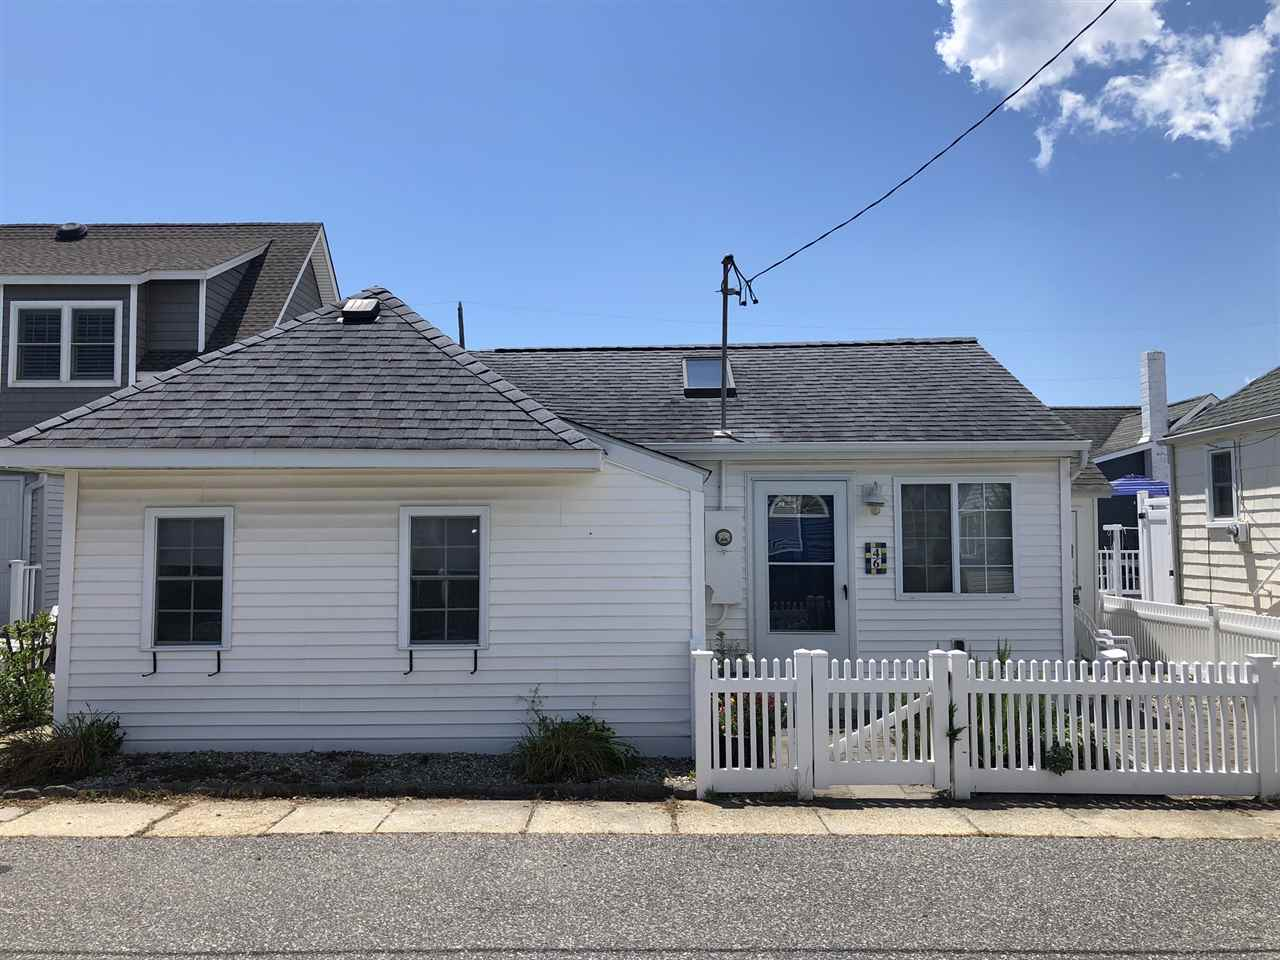 46 Stone Court - Stone Harbor